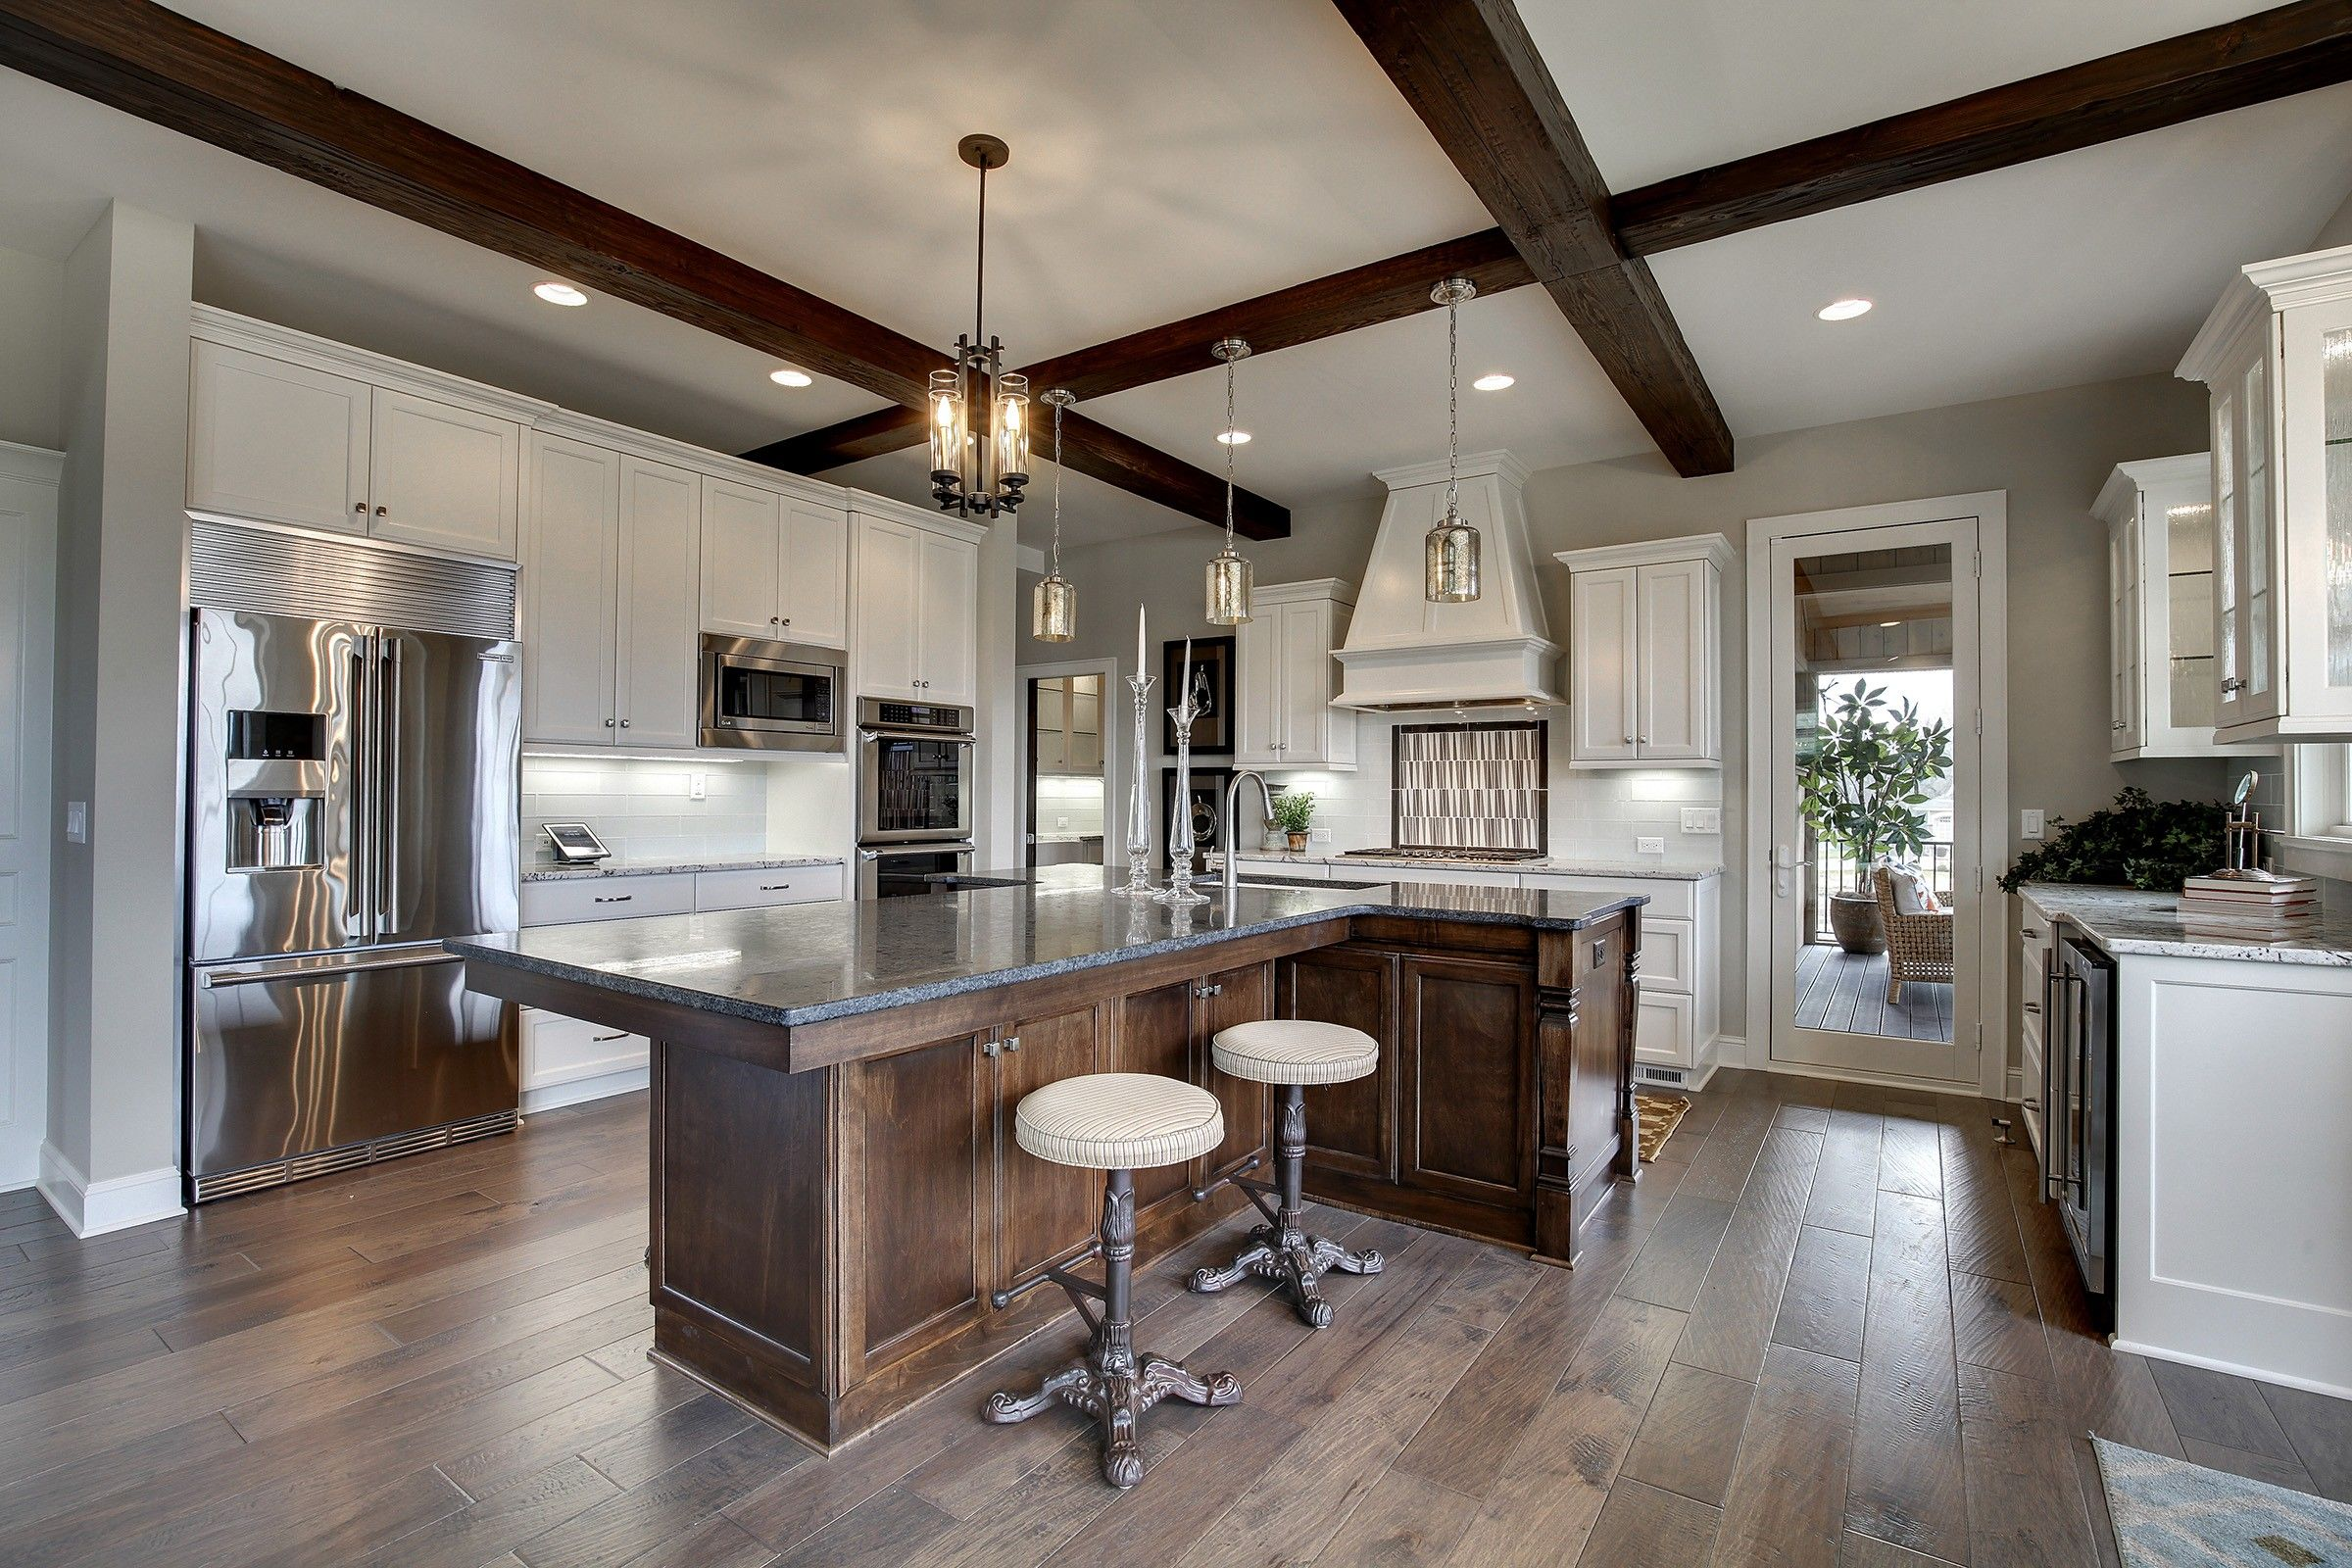 gourmet kitchen with exposed wood beams and white custom